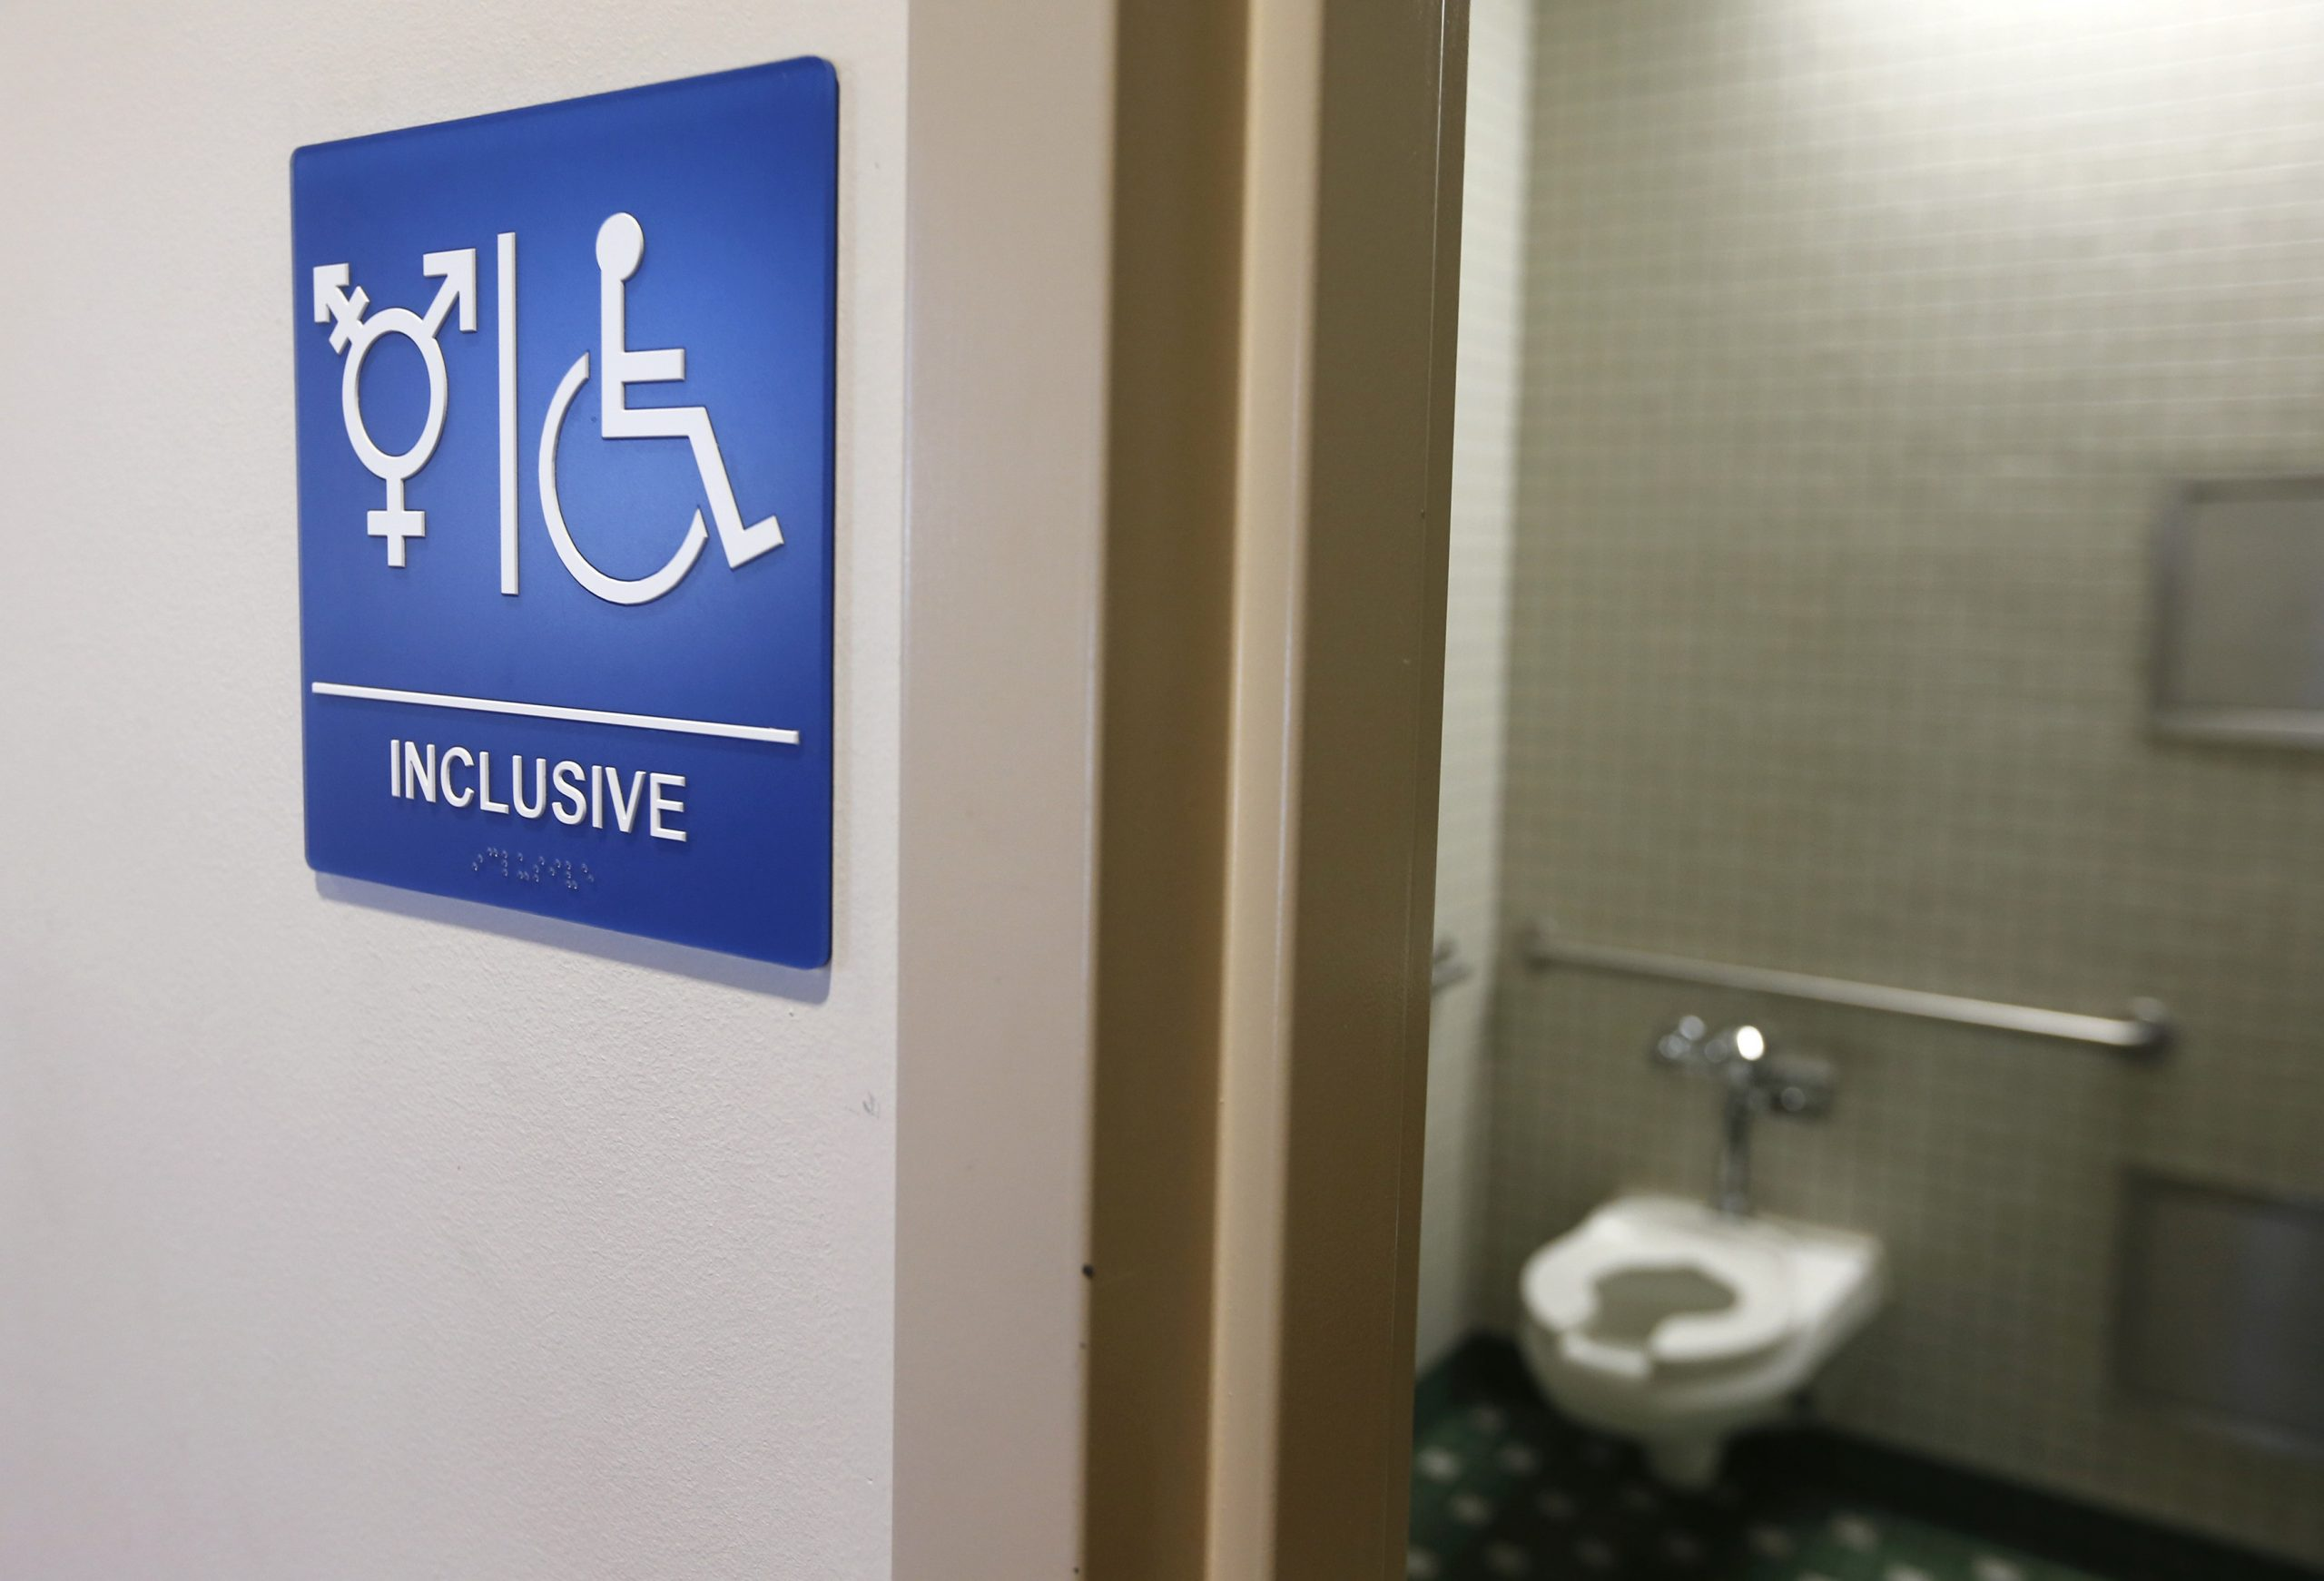 """Photo of bathroom with sign that says """"Inclusive"""" and has trans and disability icon"""